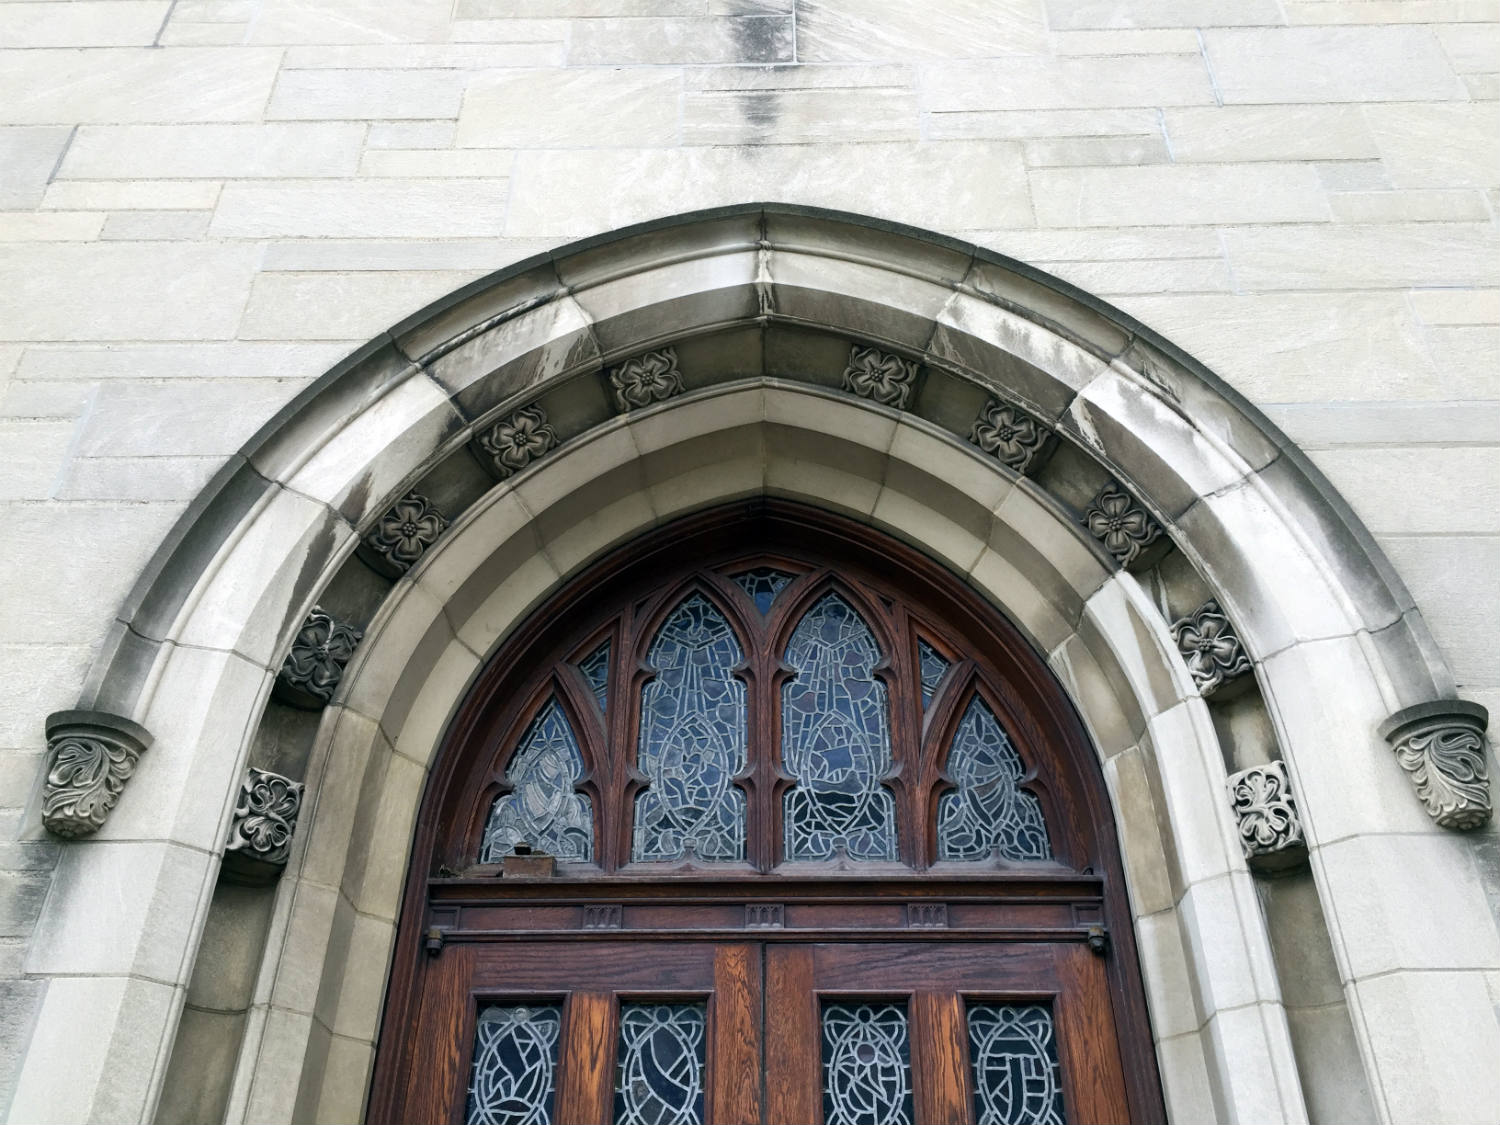 Doorway Arch at Third Presbyterian Church on East Ave in Rochester, NY